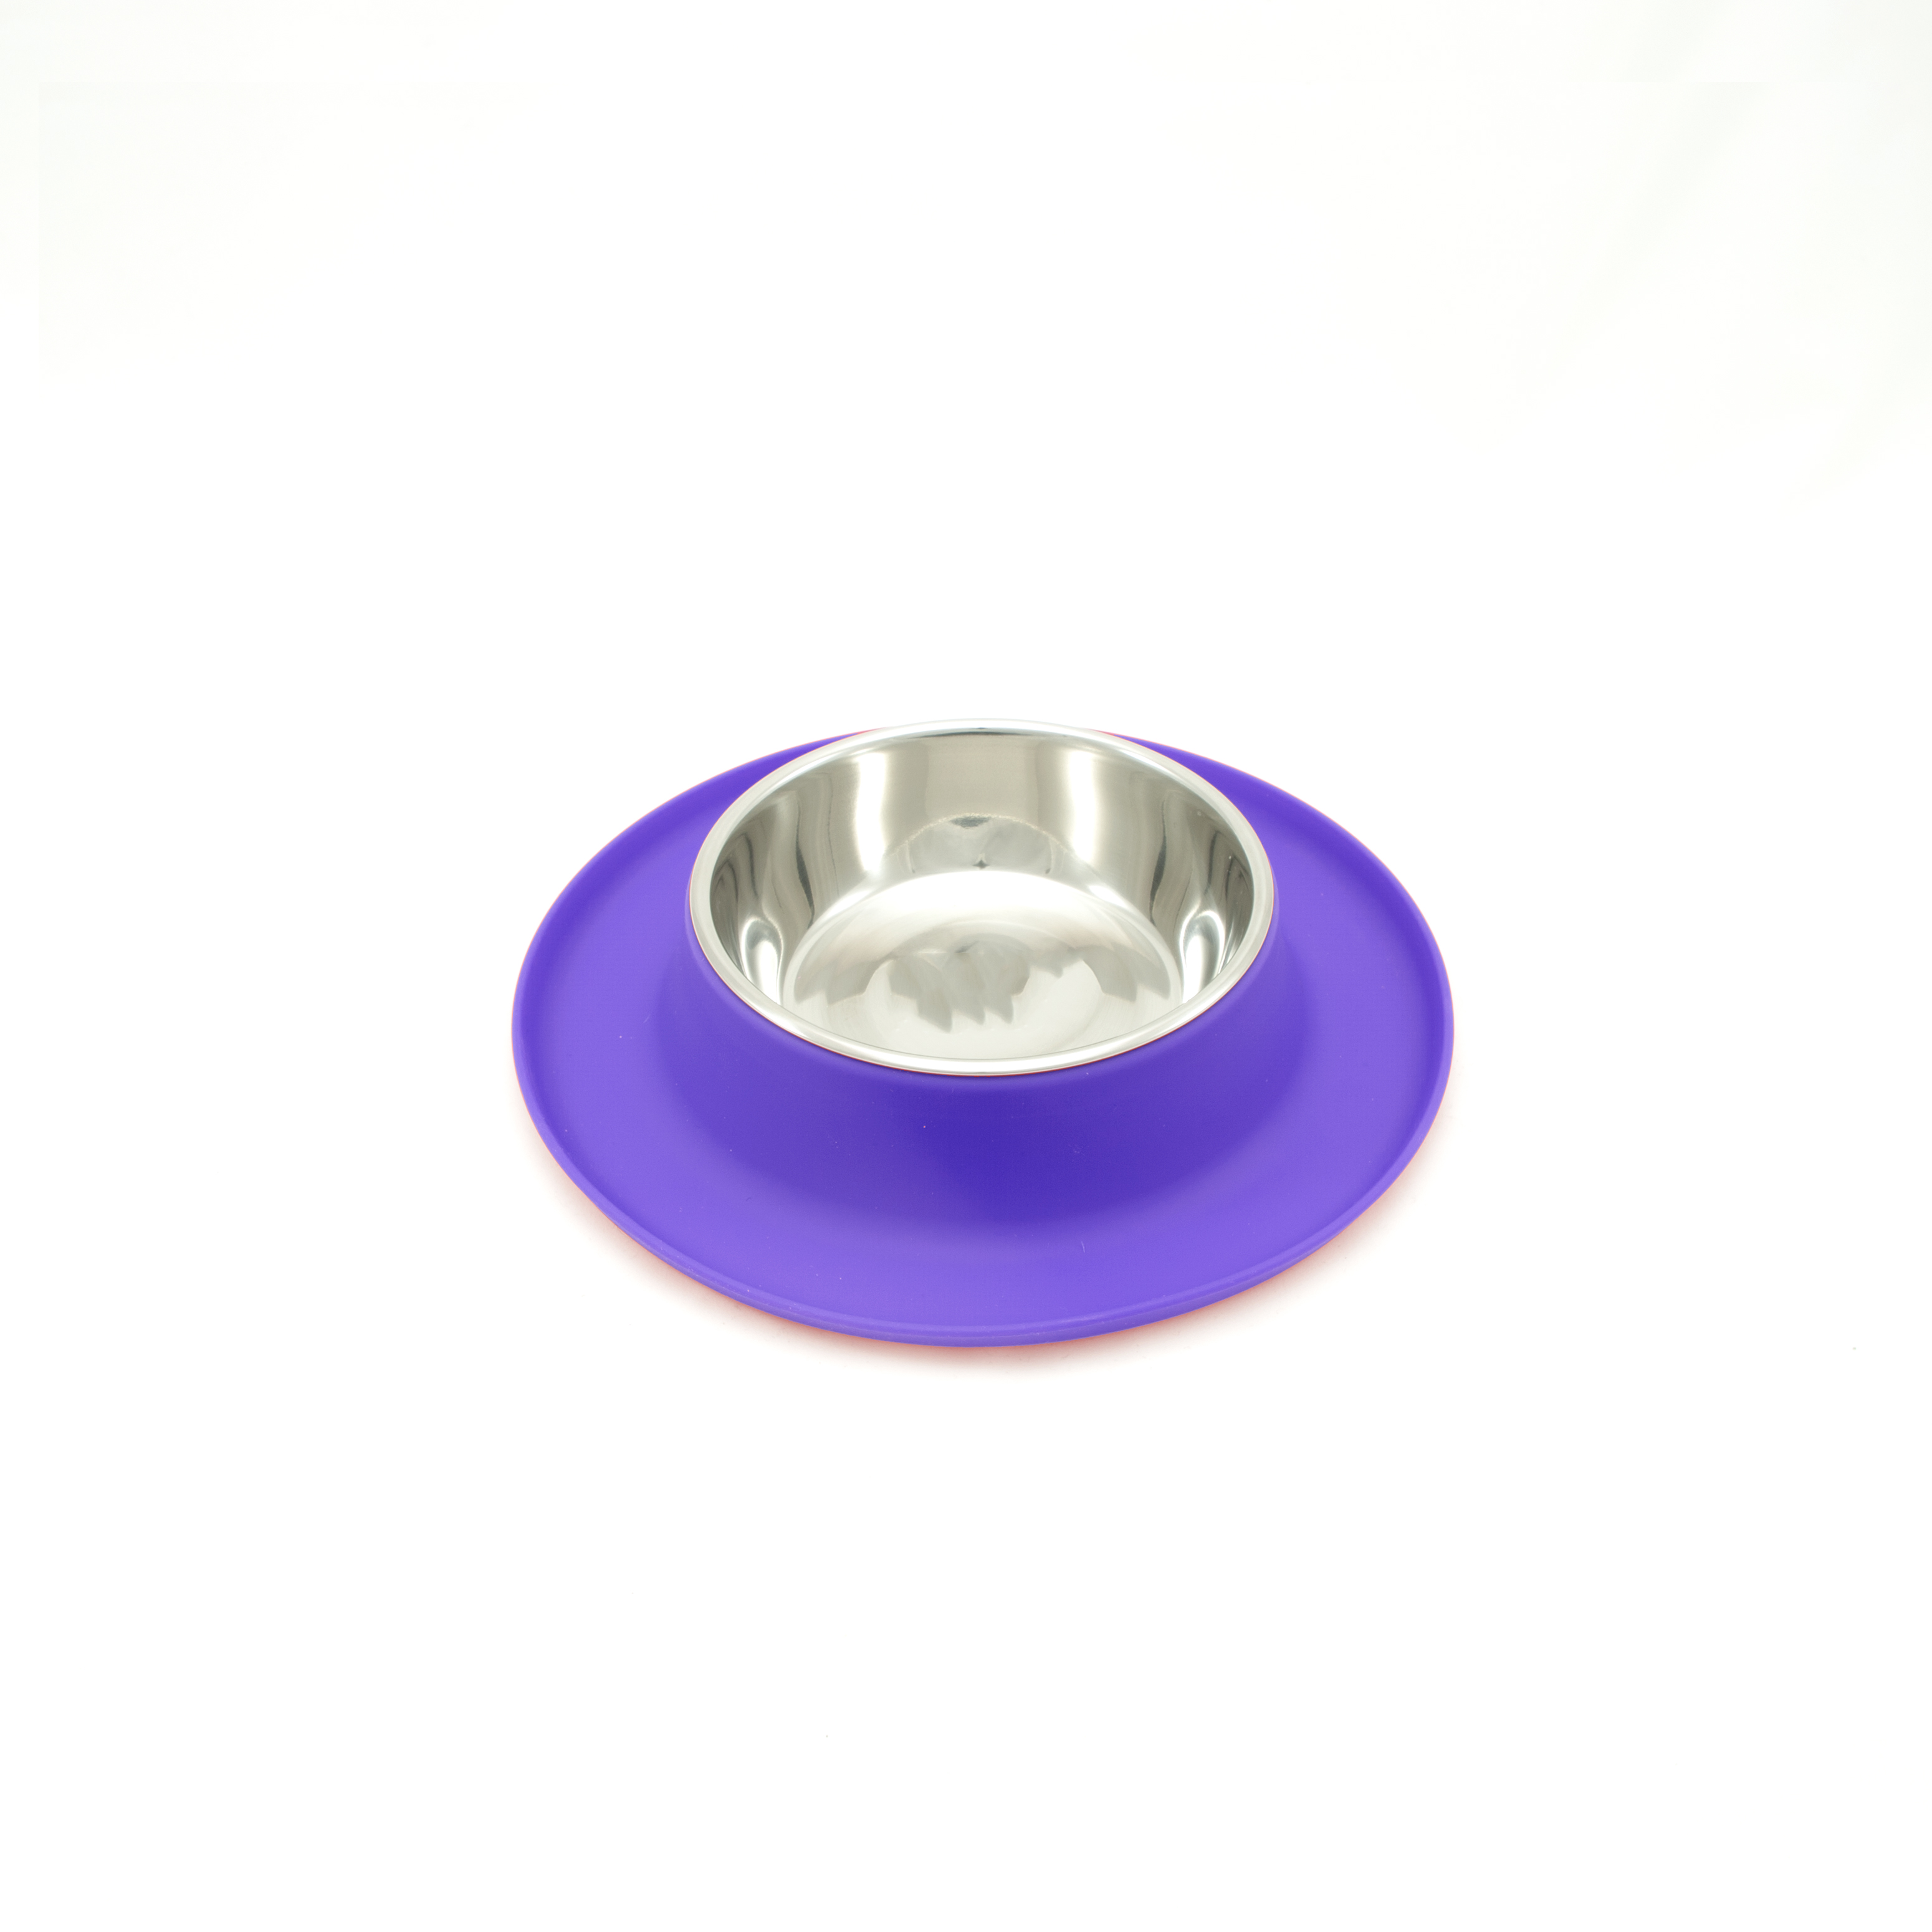 Messy Mutts Silicone Feeder for Cats, Purple